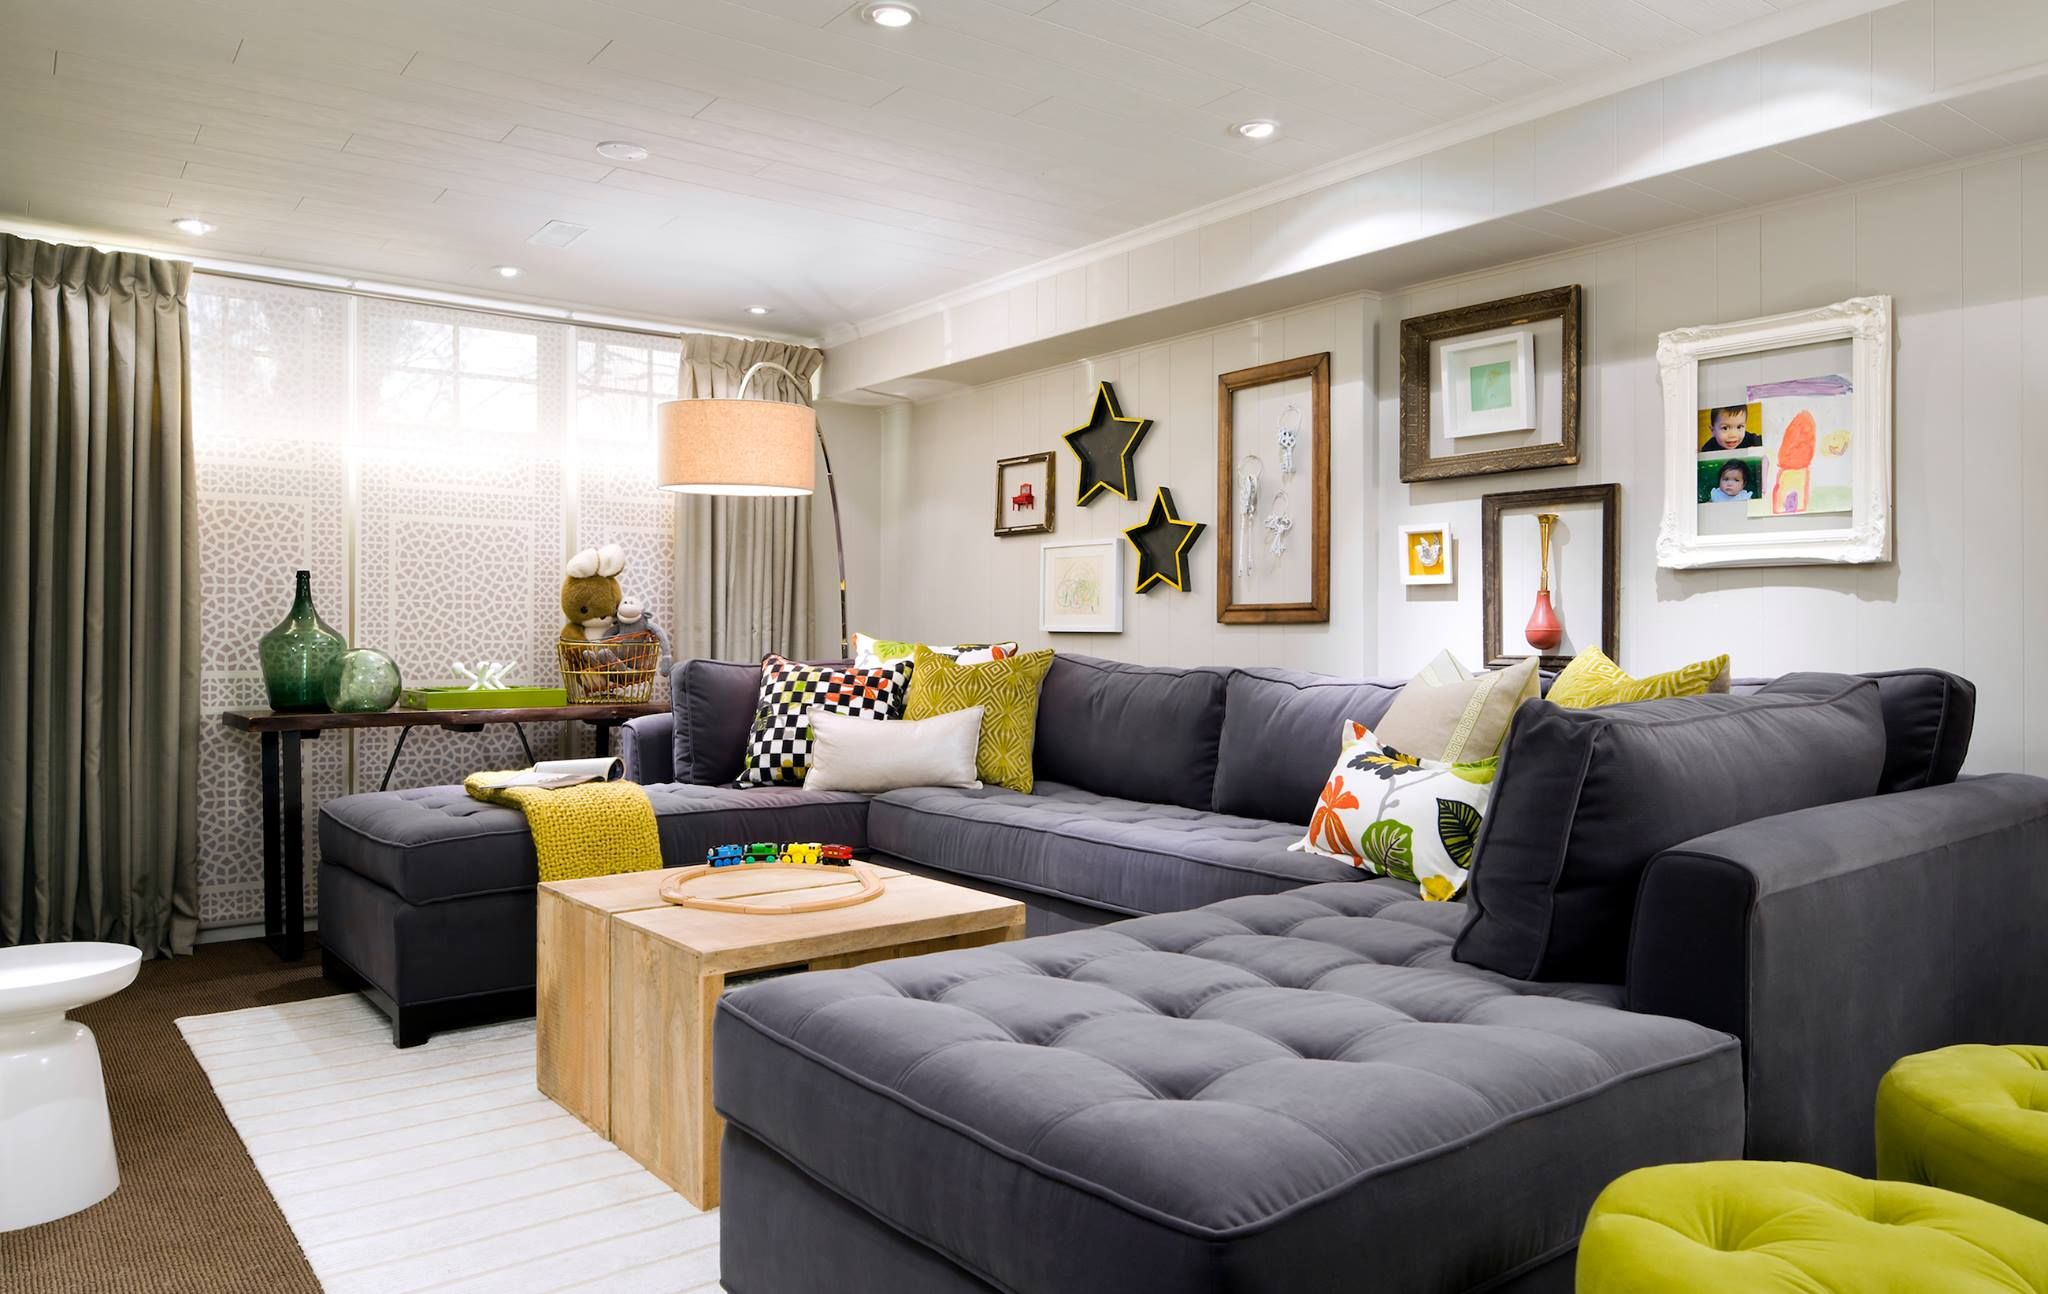 Small Room Sofa Low Ceiling And